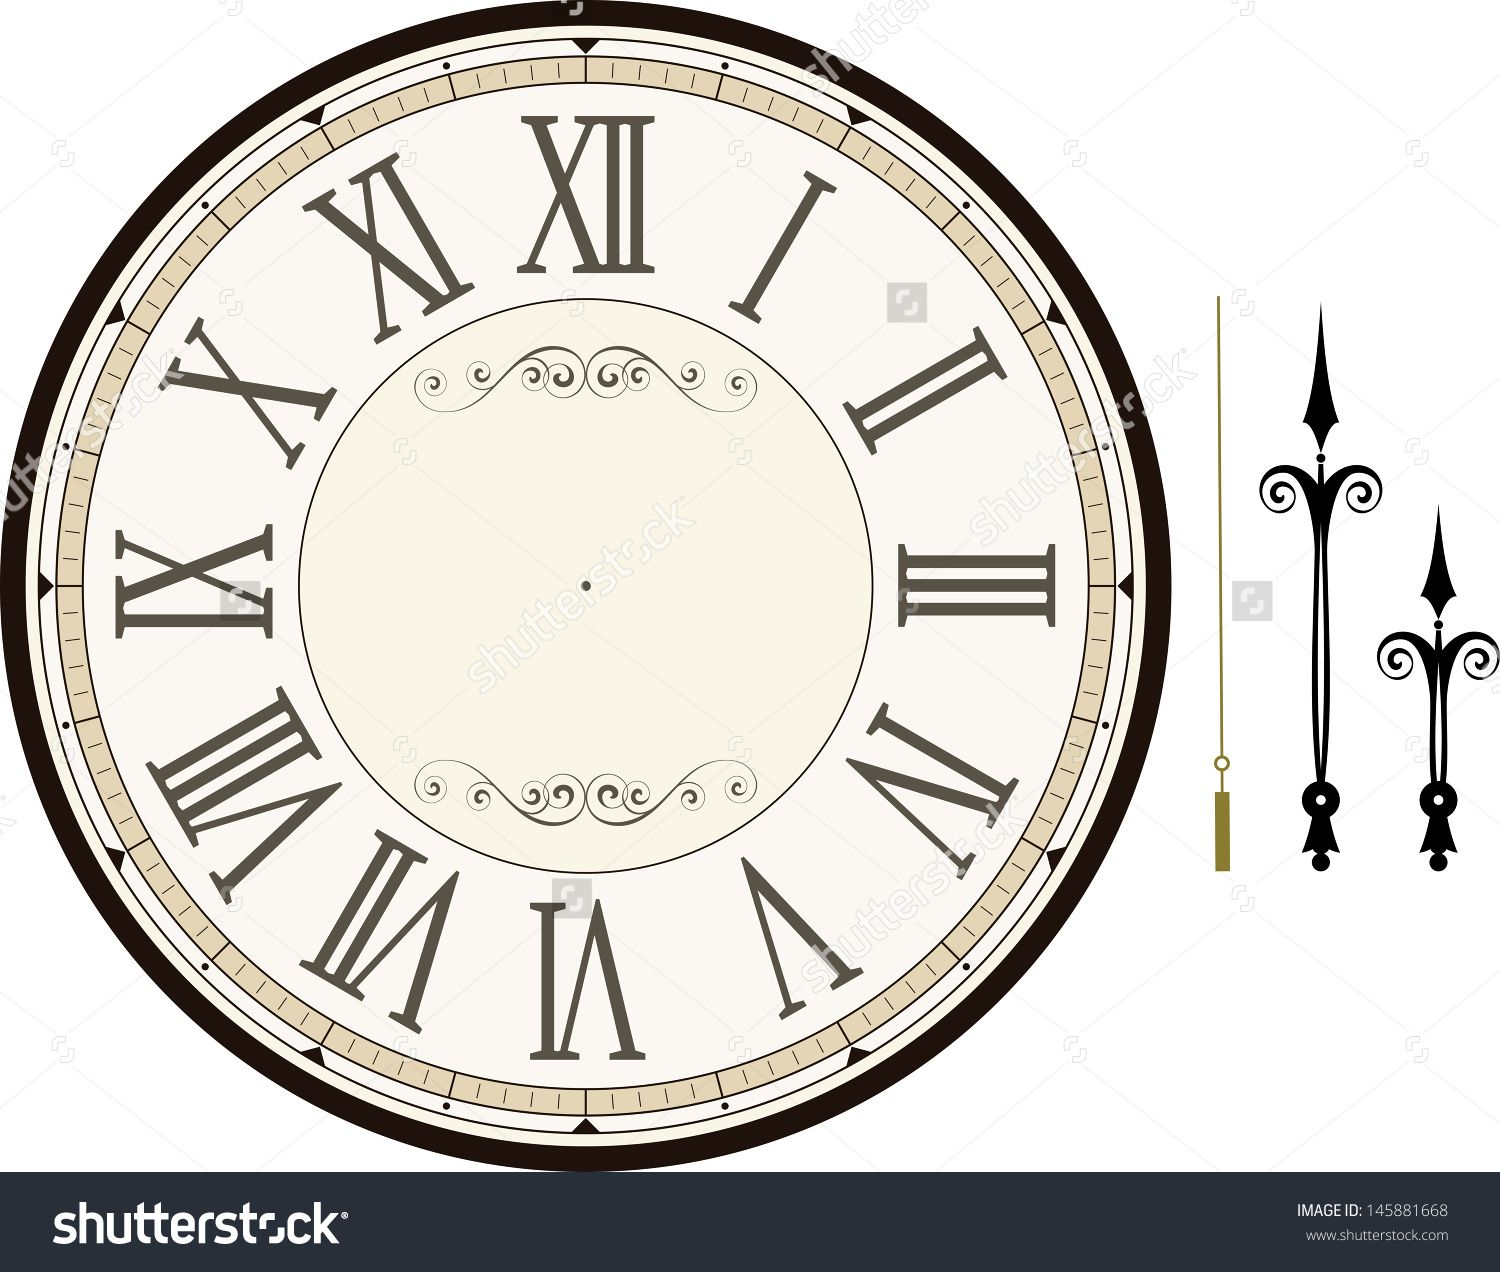 Vintage Clock Face Template With Hour Minute And Second Hands To